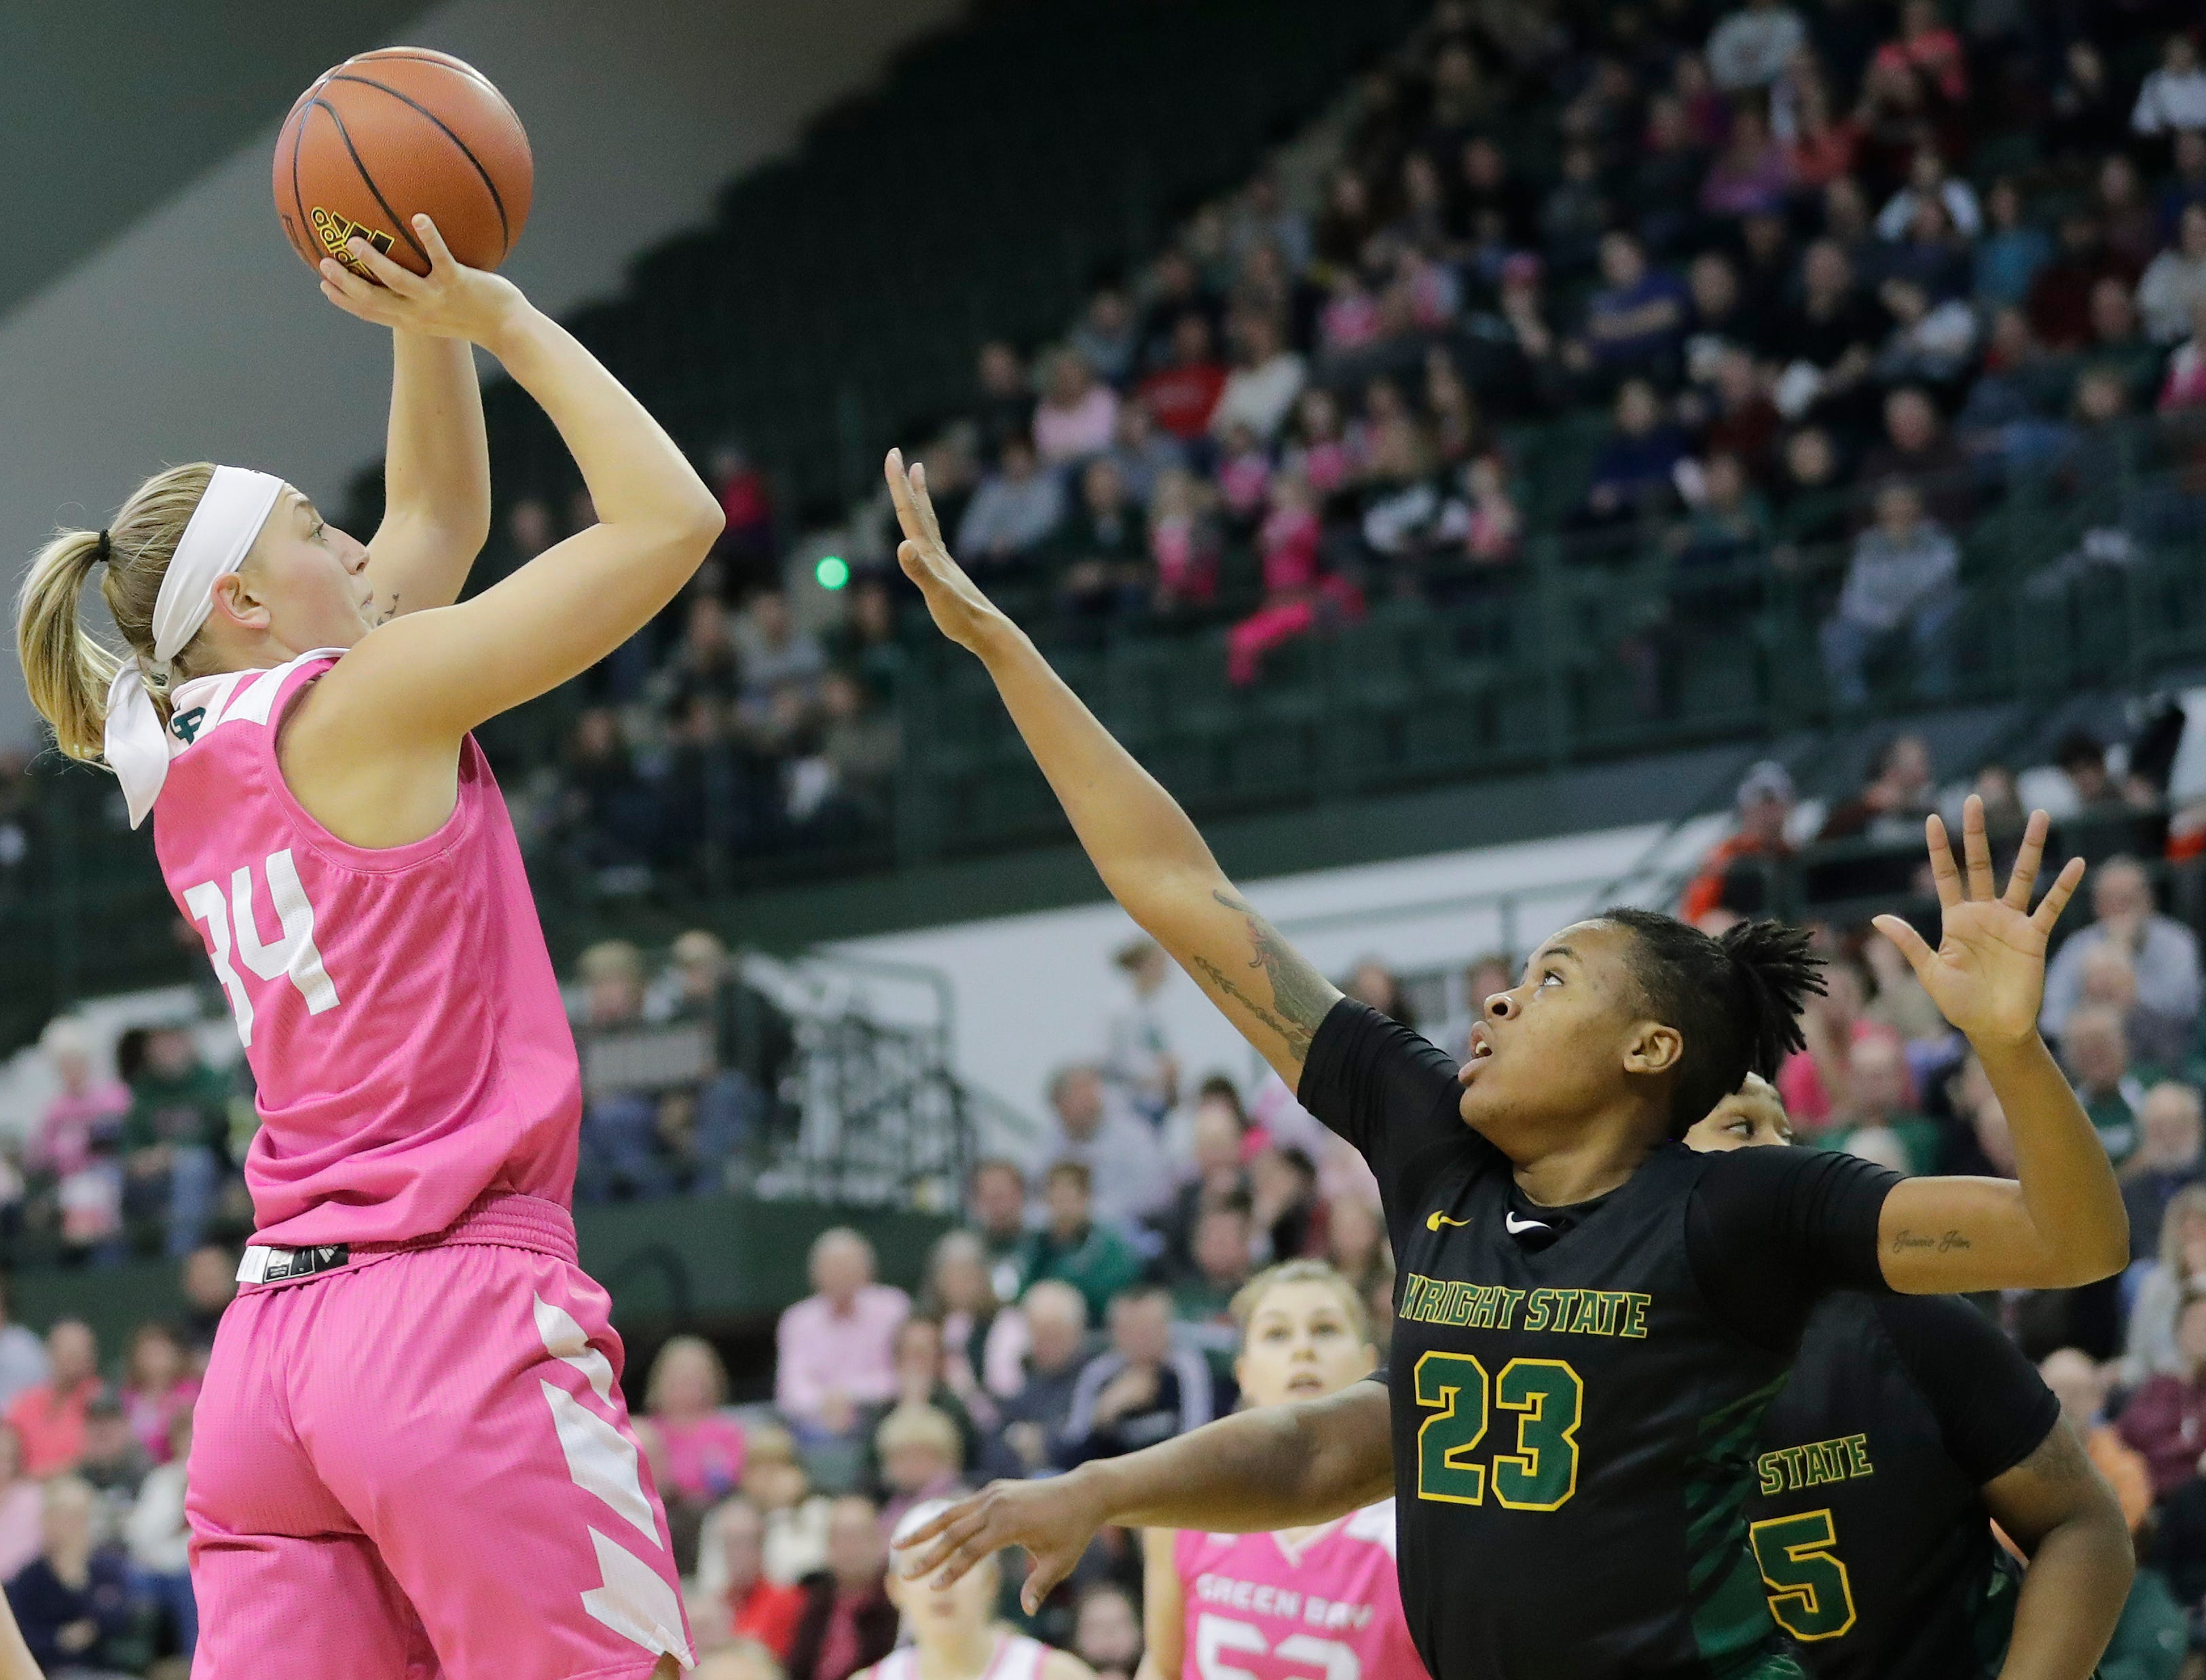 Green Bay Phoenix forward Carly Mohns (34) shoots over Wright State Raiders guard Symone Simmons (23) in a Horizon League women's basketball game at the Kress Center on Saturday, February 9, 2019 in Green Bay, Wis.